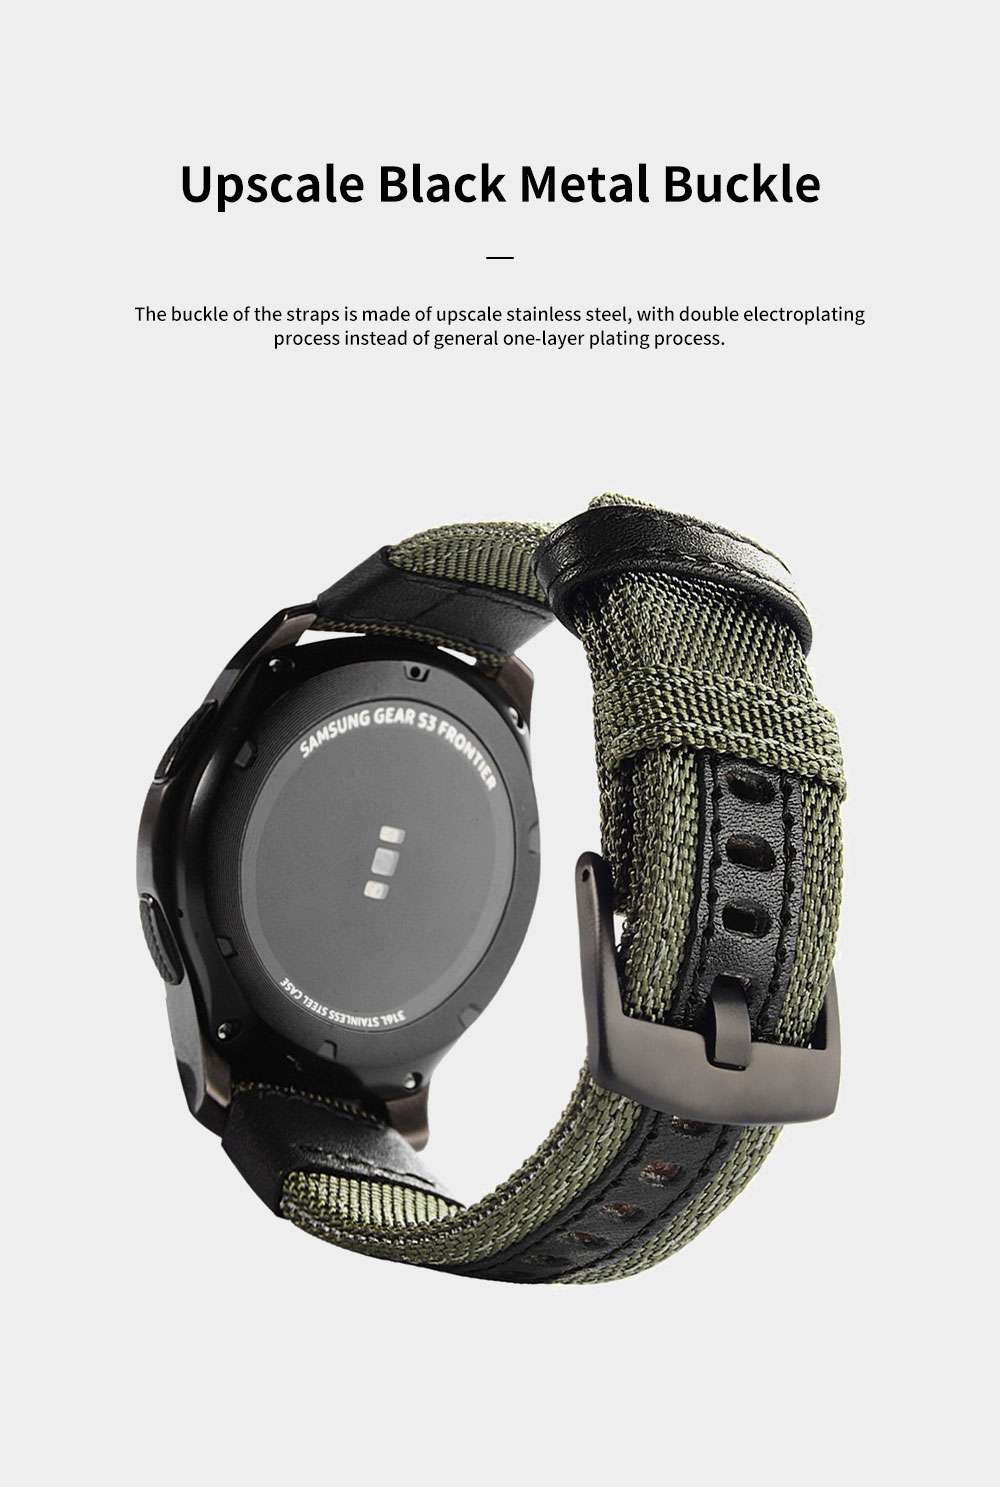 Gear S3 Nylon Bands 22 mm Woven Nylon Replacement Strap Sport Wristband Bracelet with Steel Metal Buckle for Samsung Gear S3 Classic, Gear S3 Frontier, Moto 360 2nd Gen 46mm 2